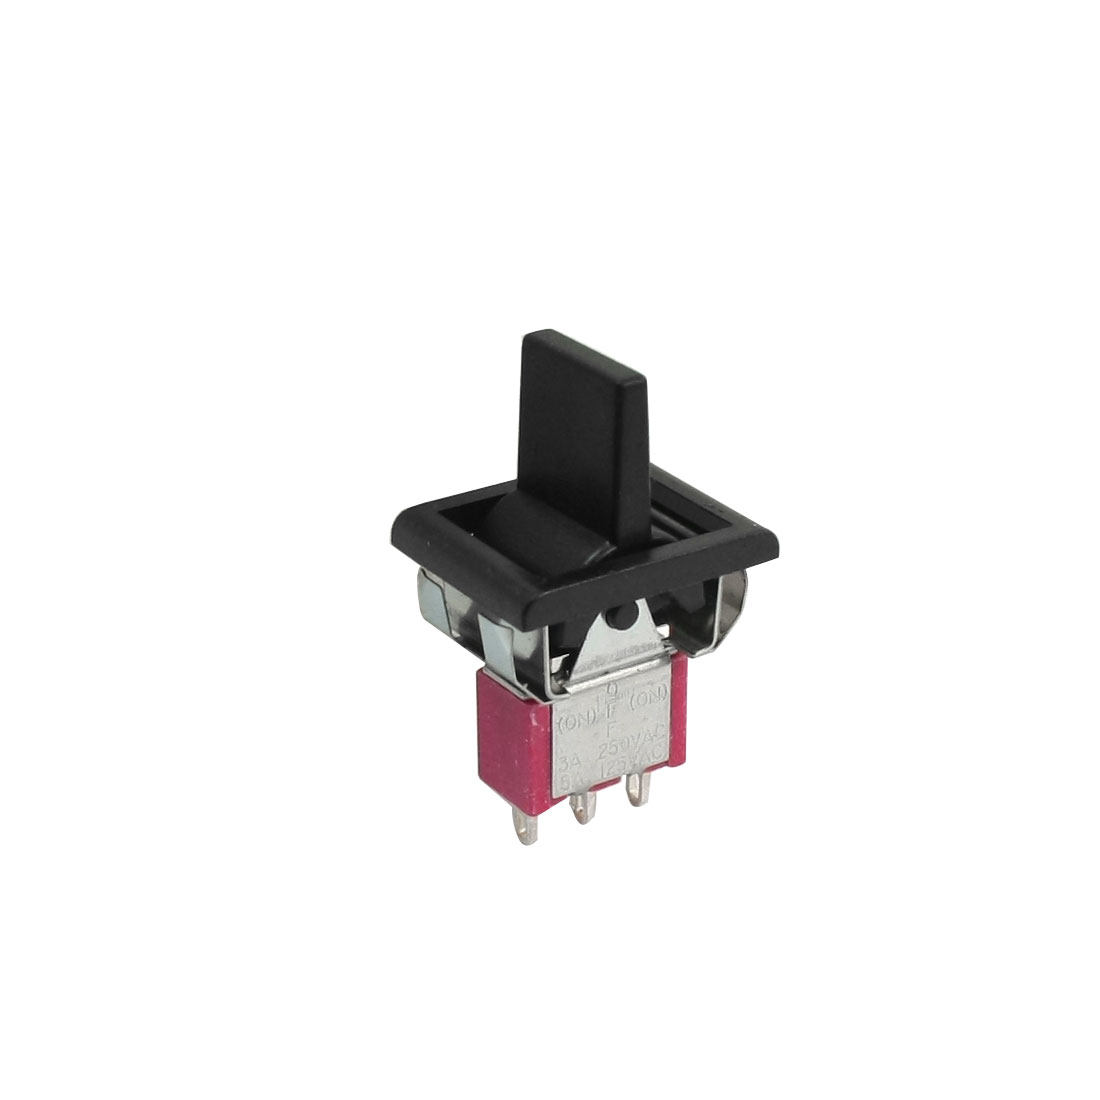 AC 250V/3A 125V/5A Momentary SPDT 3 Positions Toggle Switch T80-R